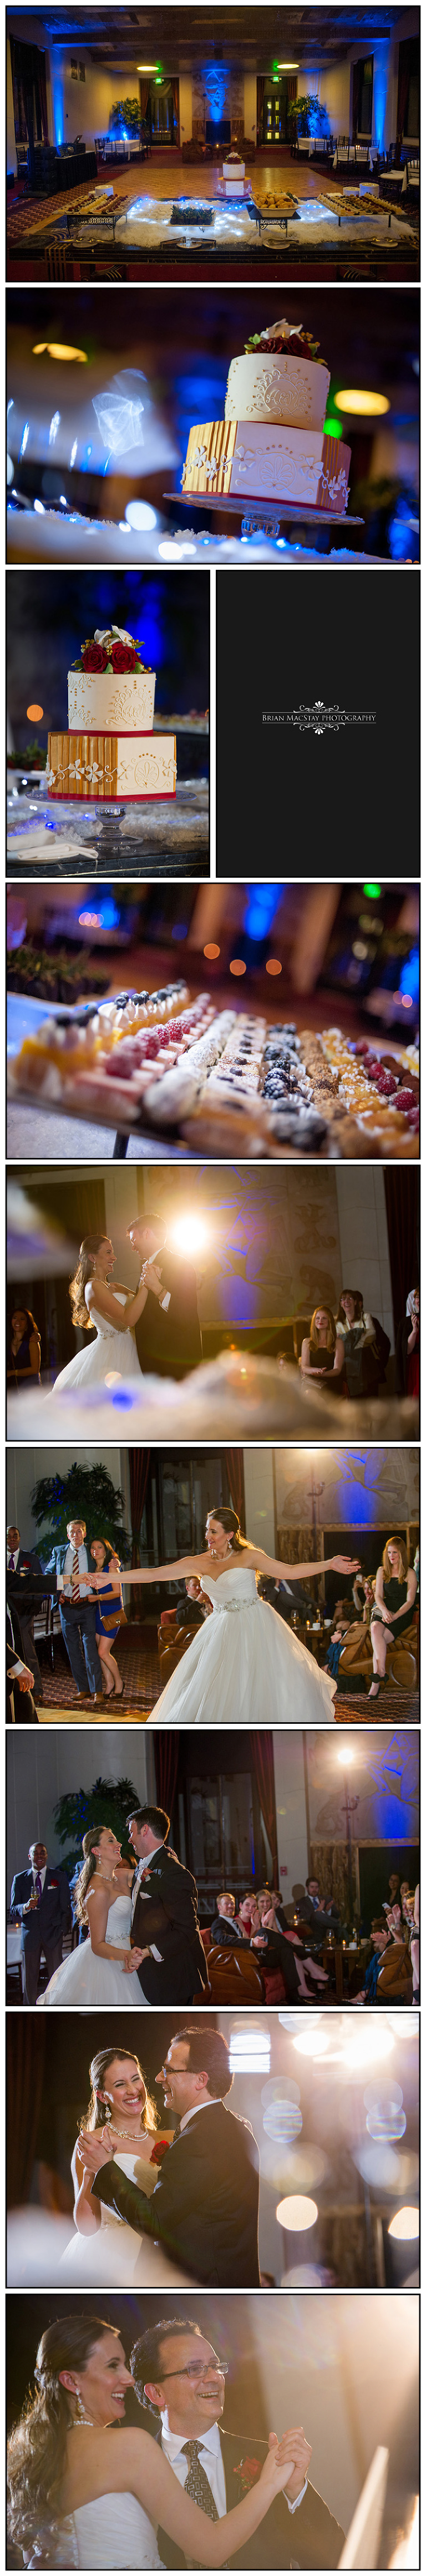 Winter Wedding At Grace Cathedral And The City Club Of San Francisco